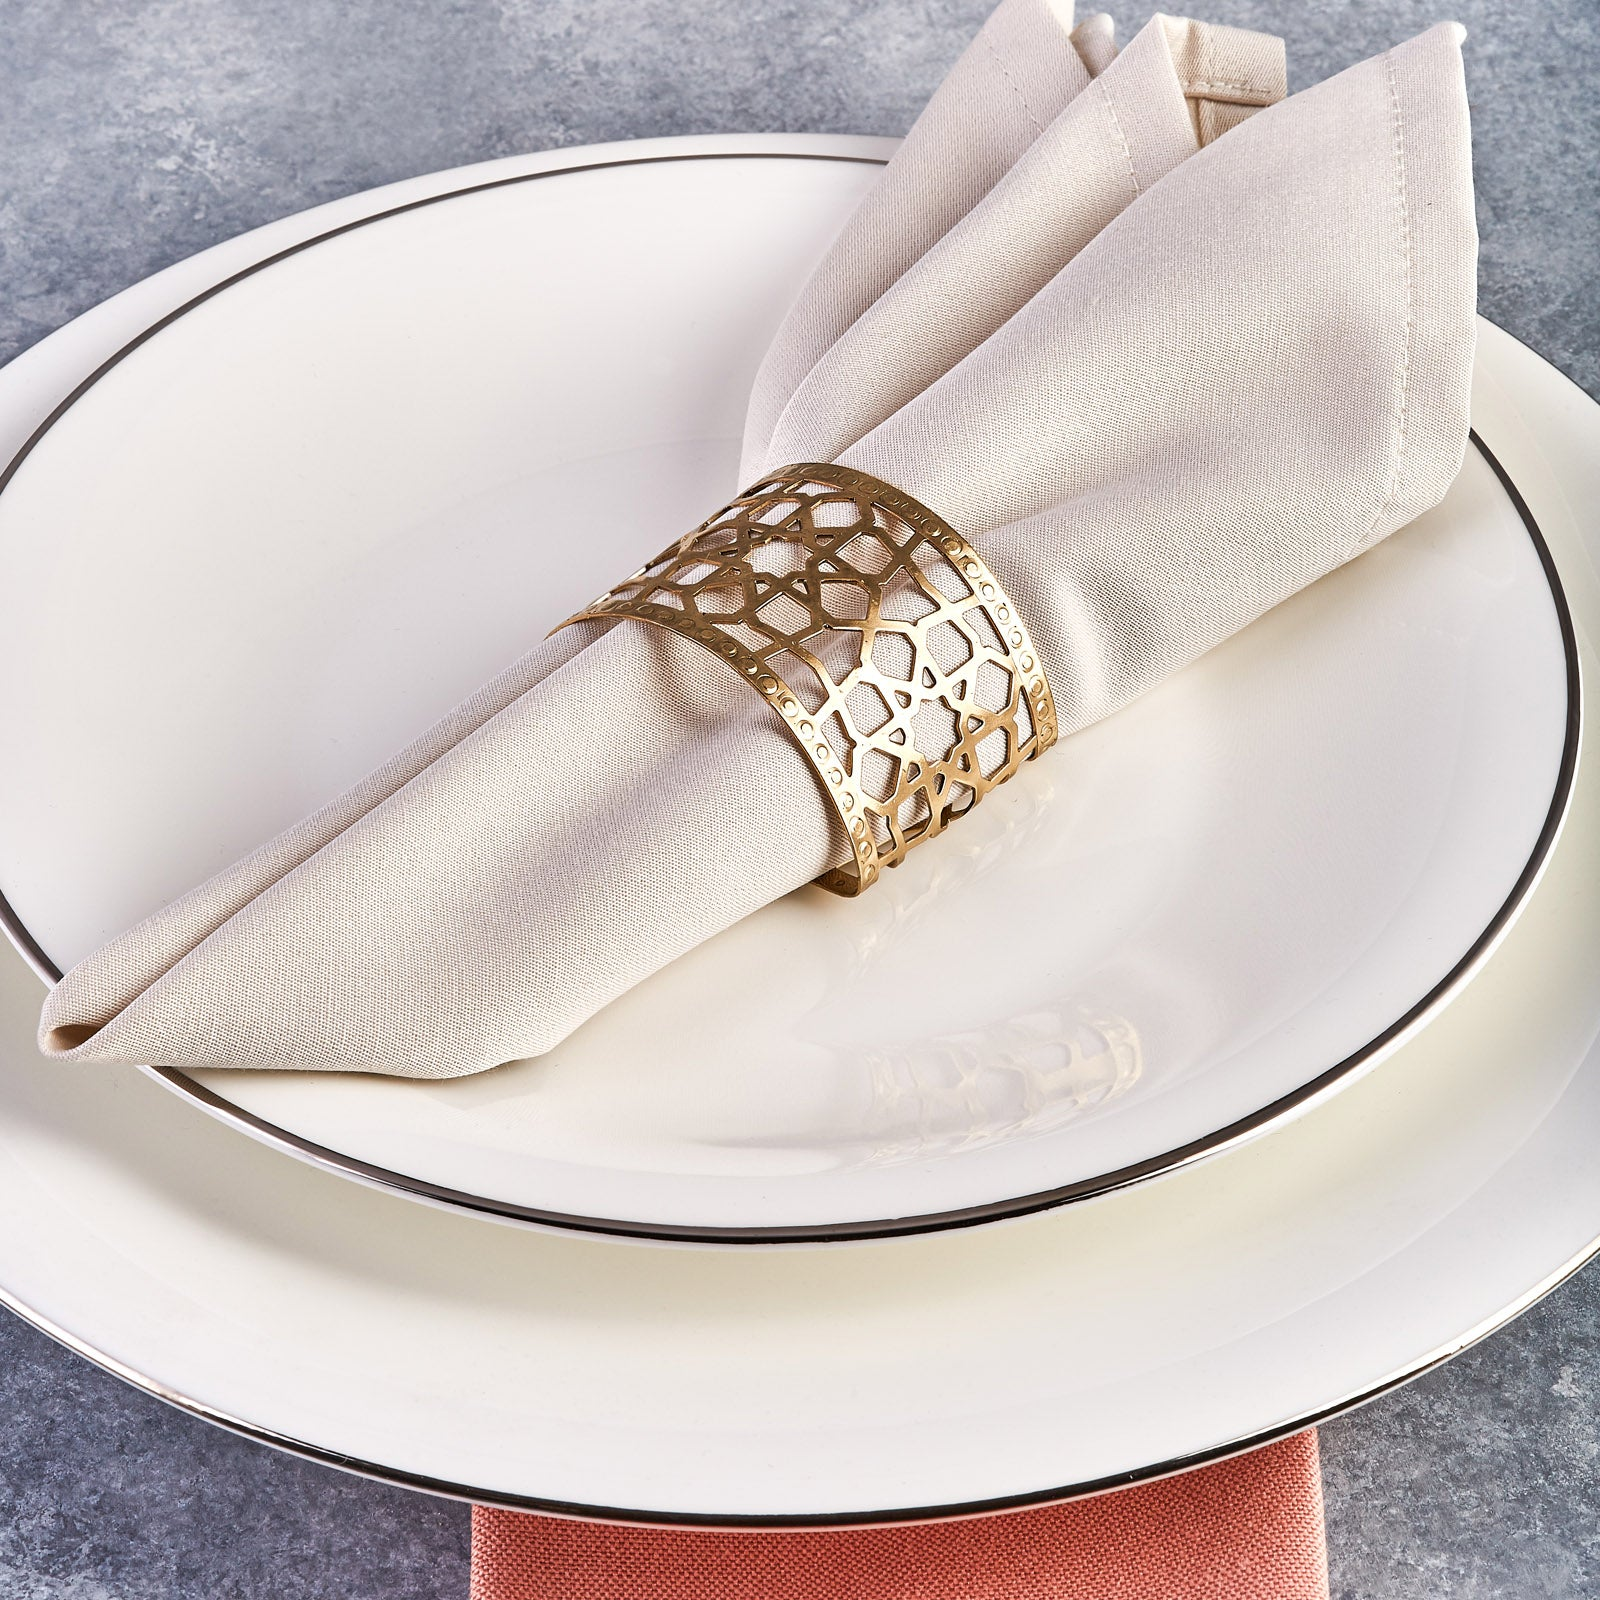 Karaca Seljuk Large 6-Piece Napkin Ring Set Gold 153.19.01.1486